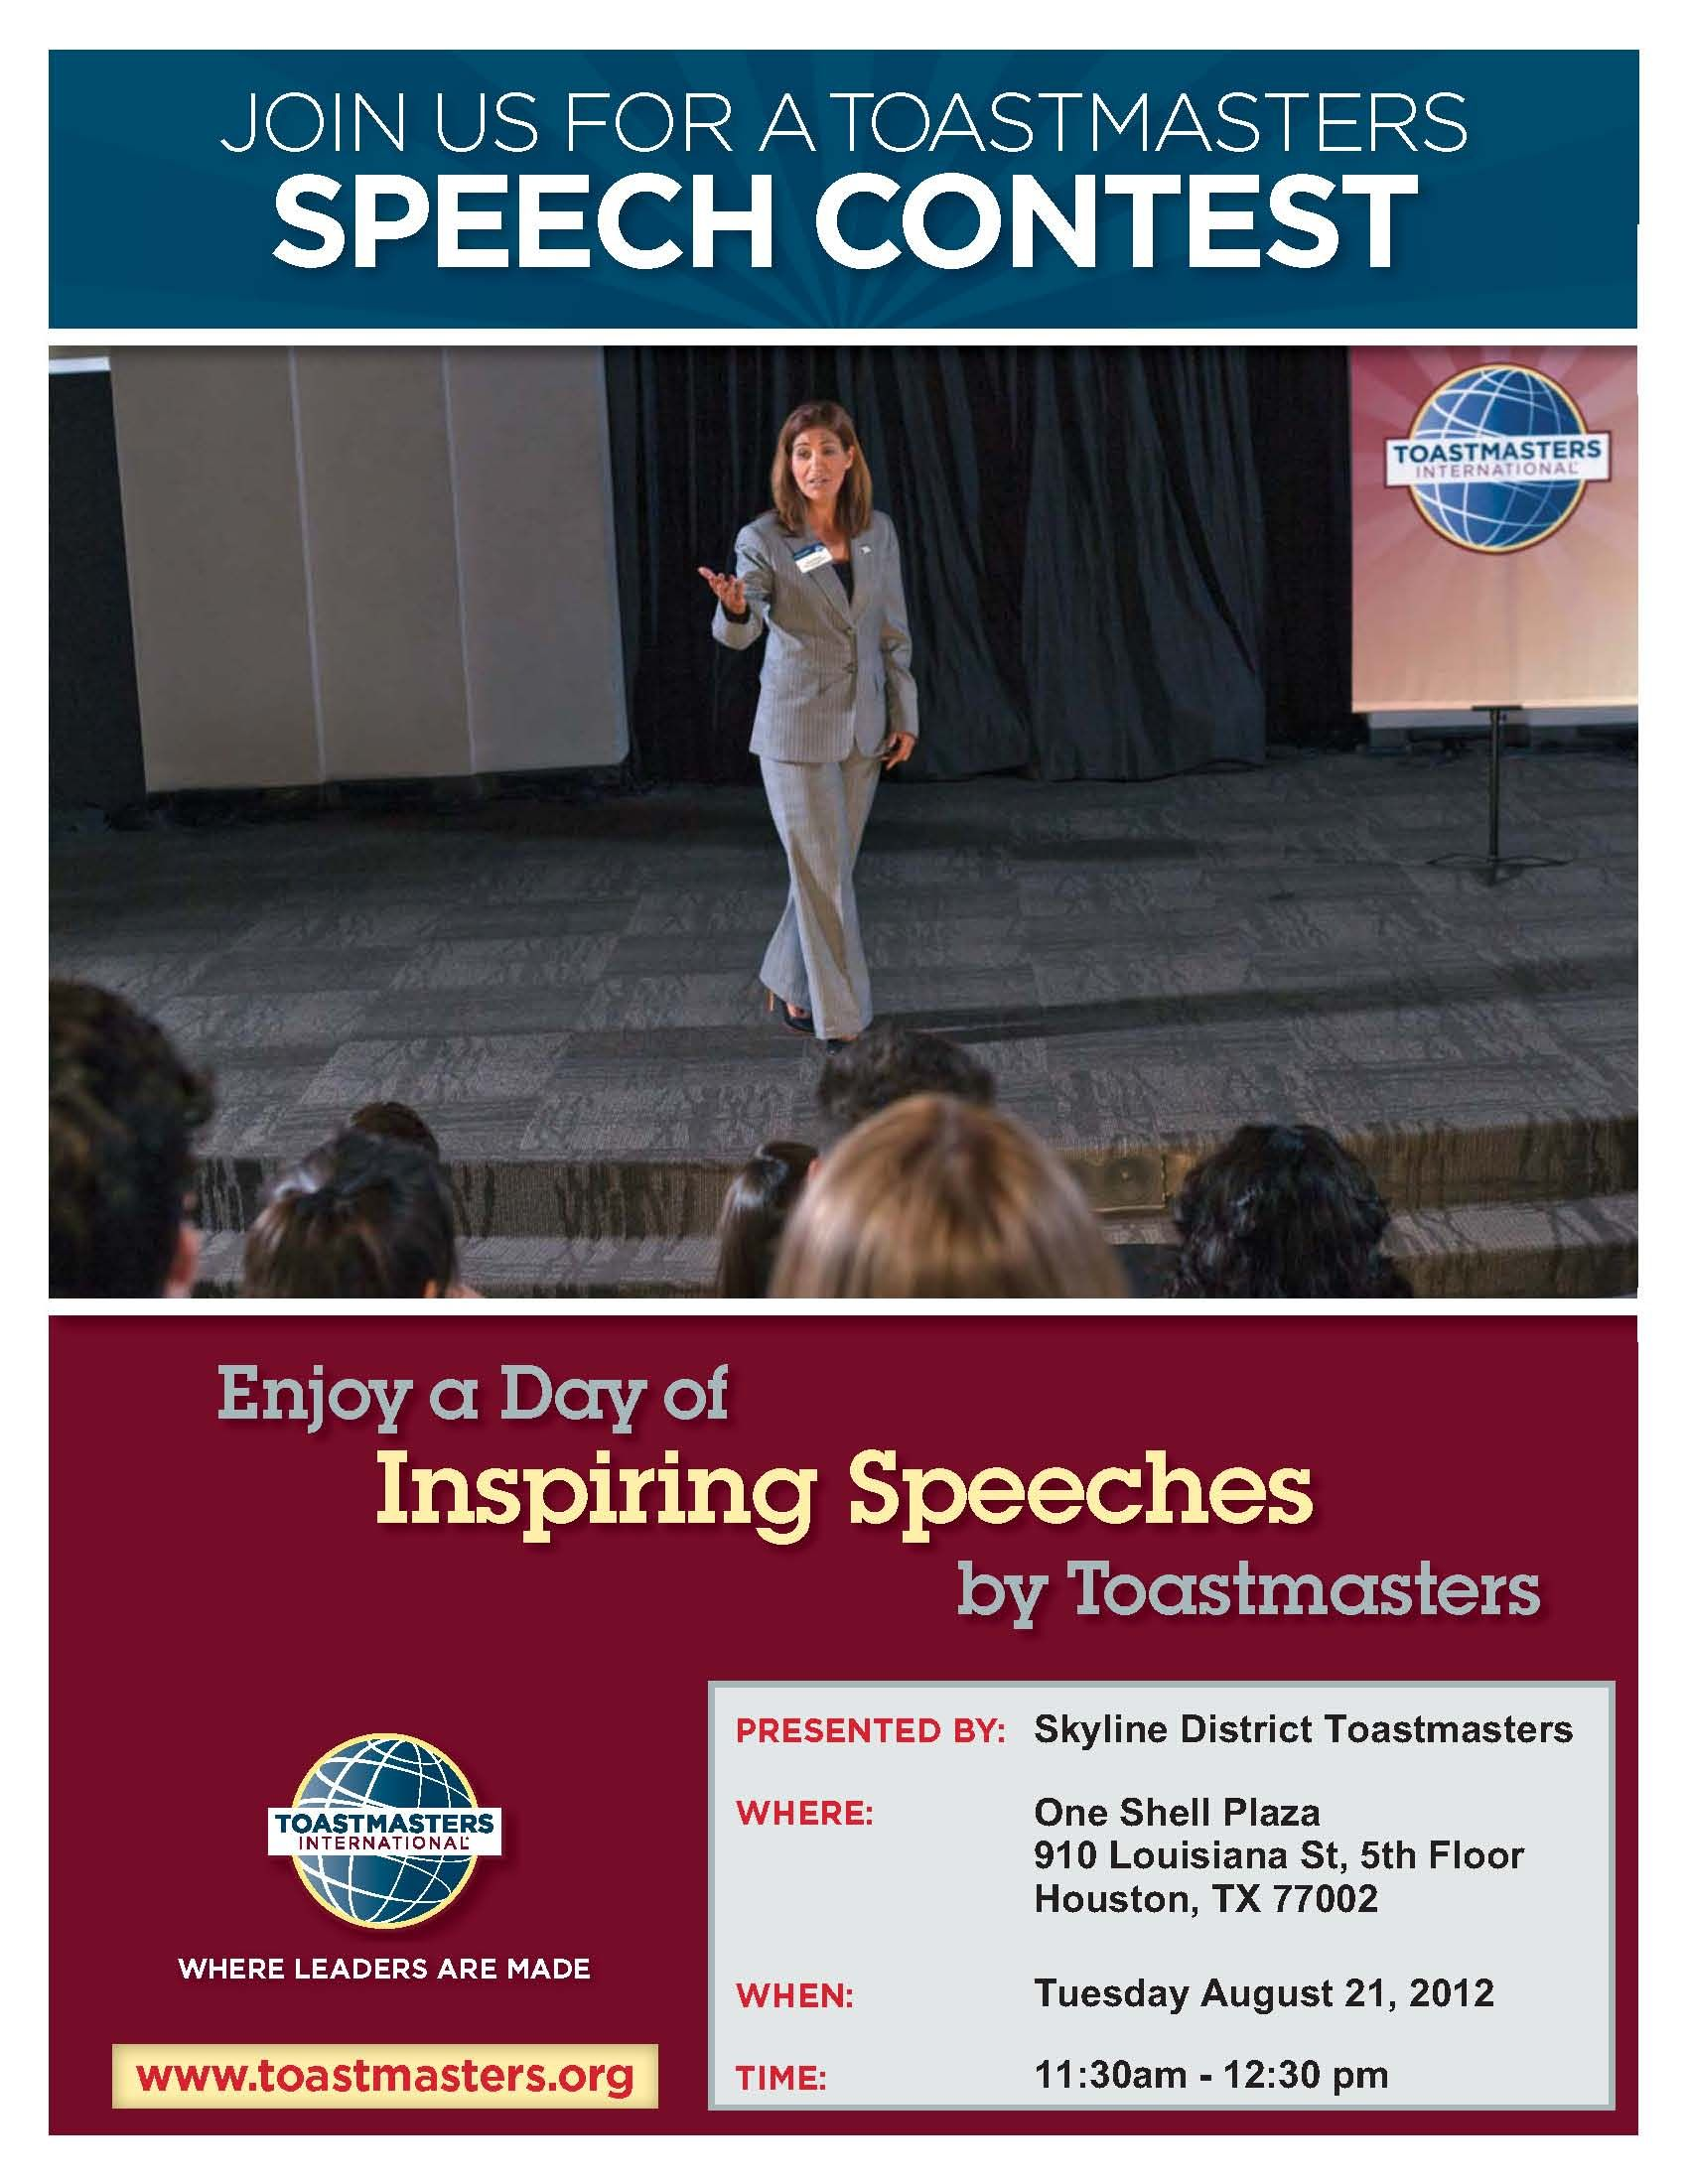 Speech Contest Flyer Toastmasters Pinterest Education And Words Toastmaster Wiring Diagram